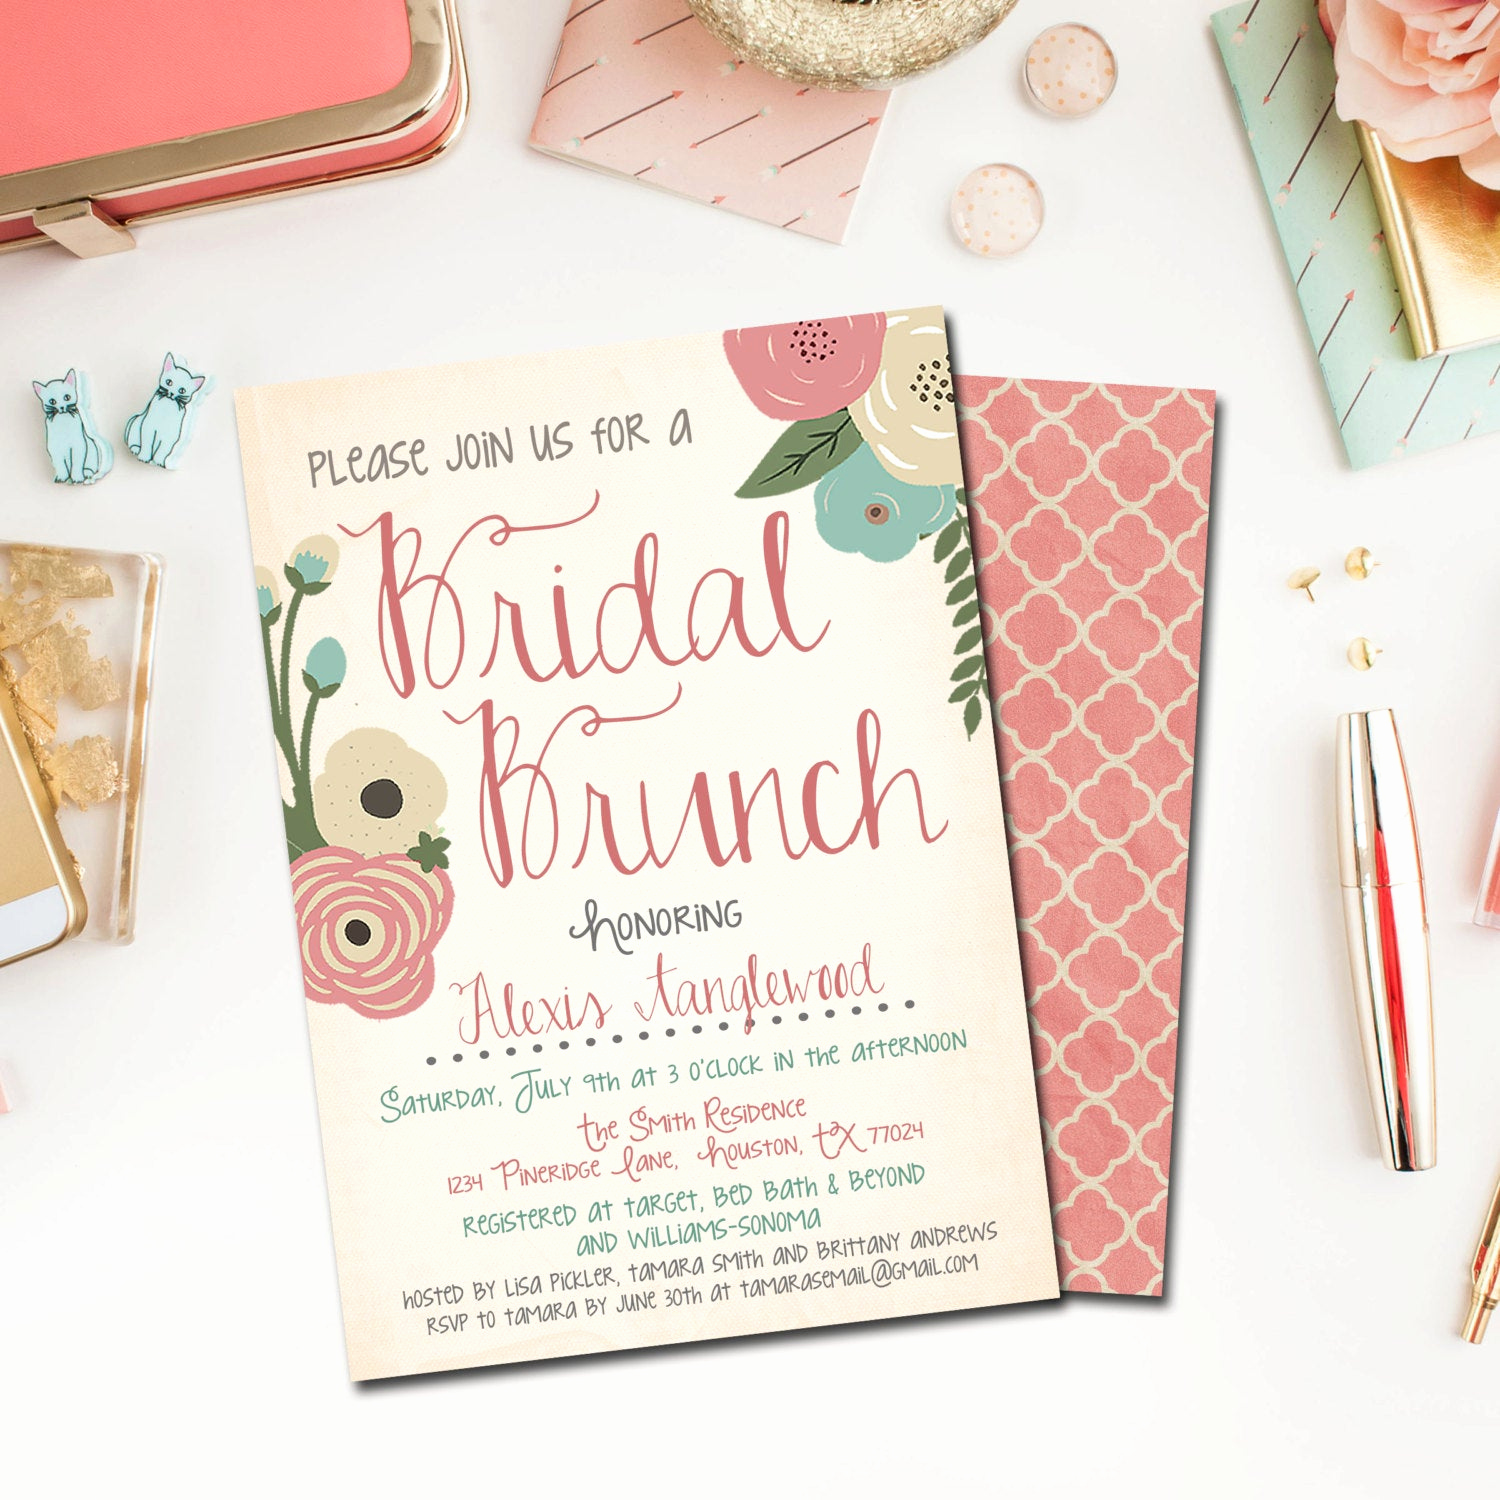 Bridal Shower Invitation Images Luxury Bridal Shower Invitation Bridal Shower Invite Bridal Shower